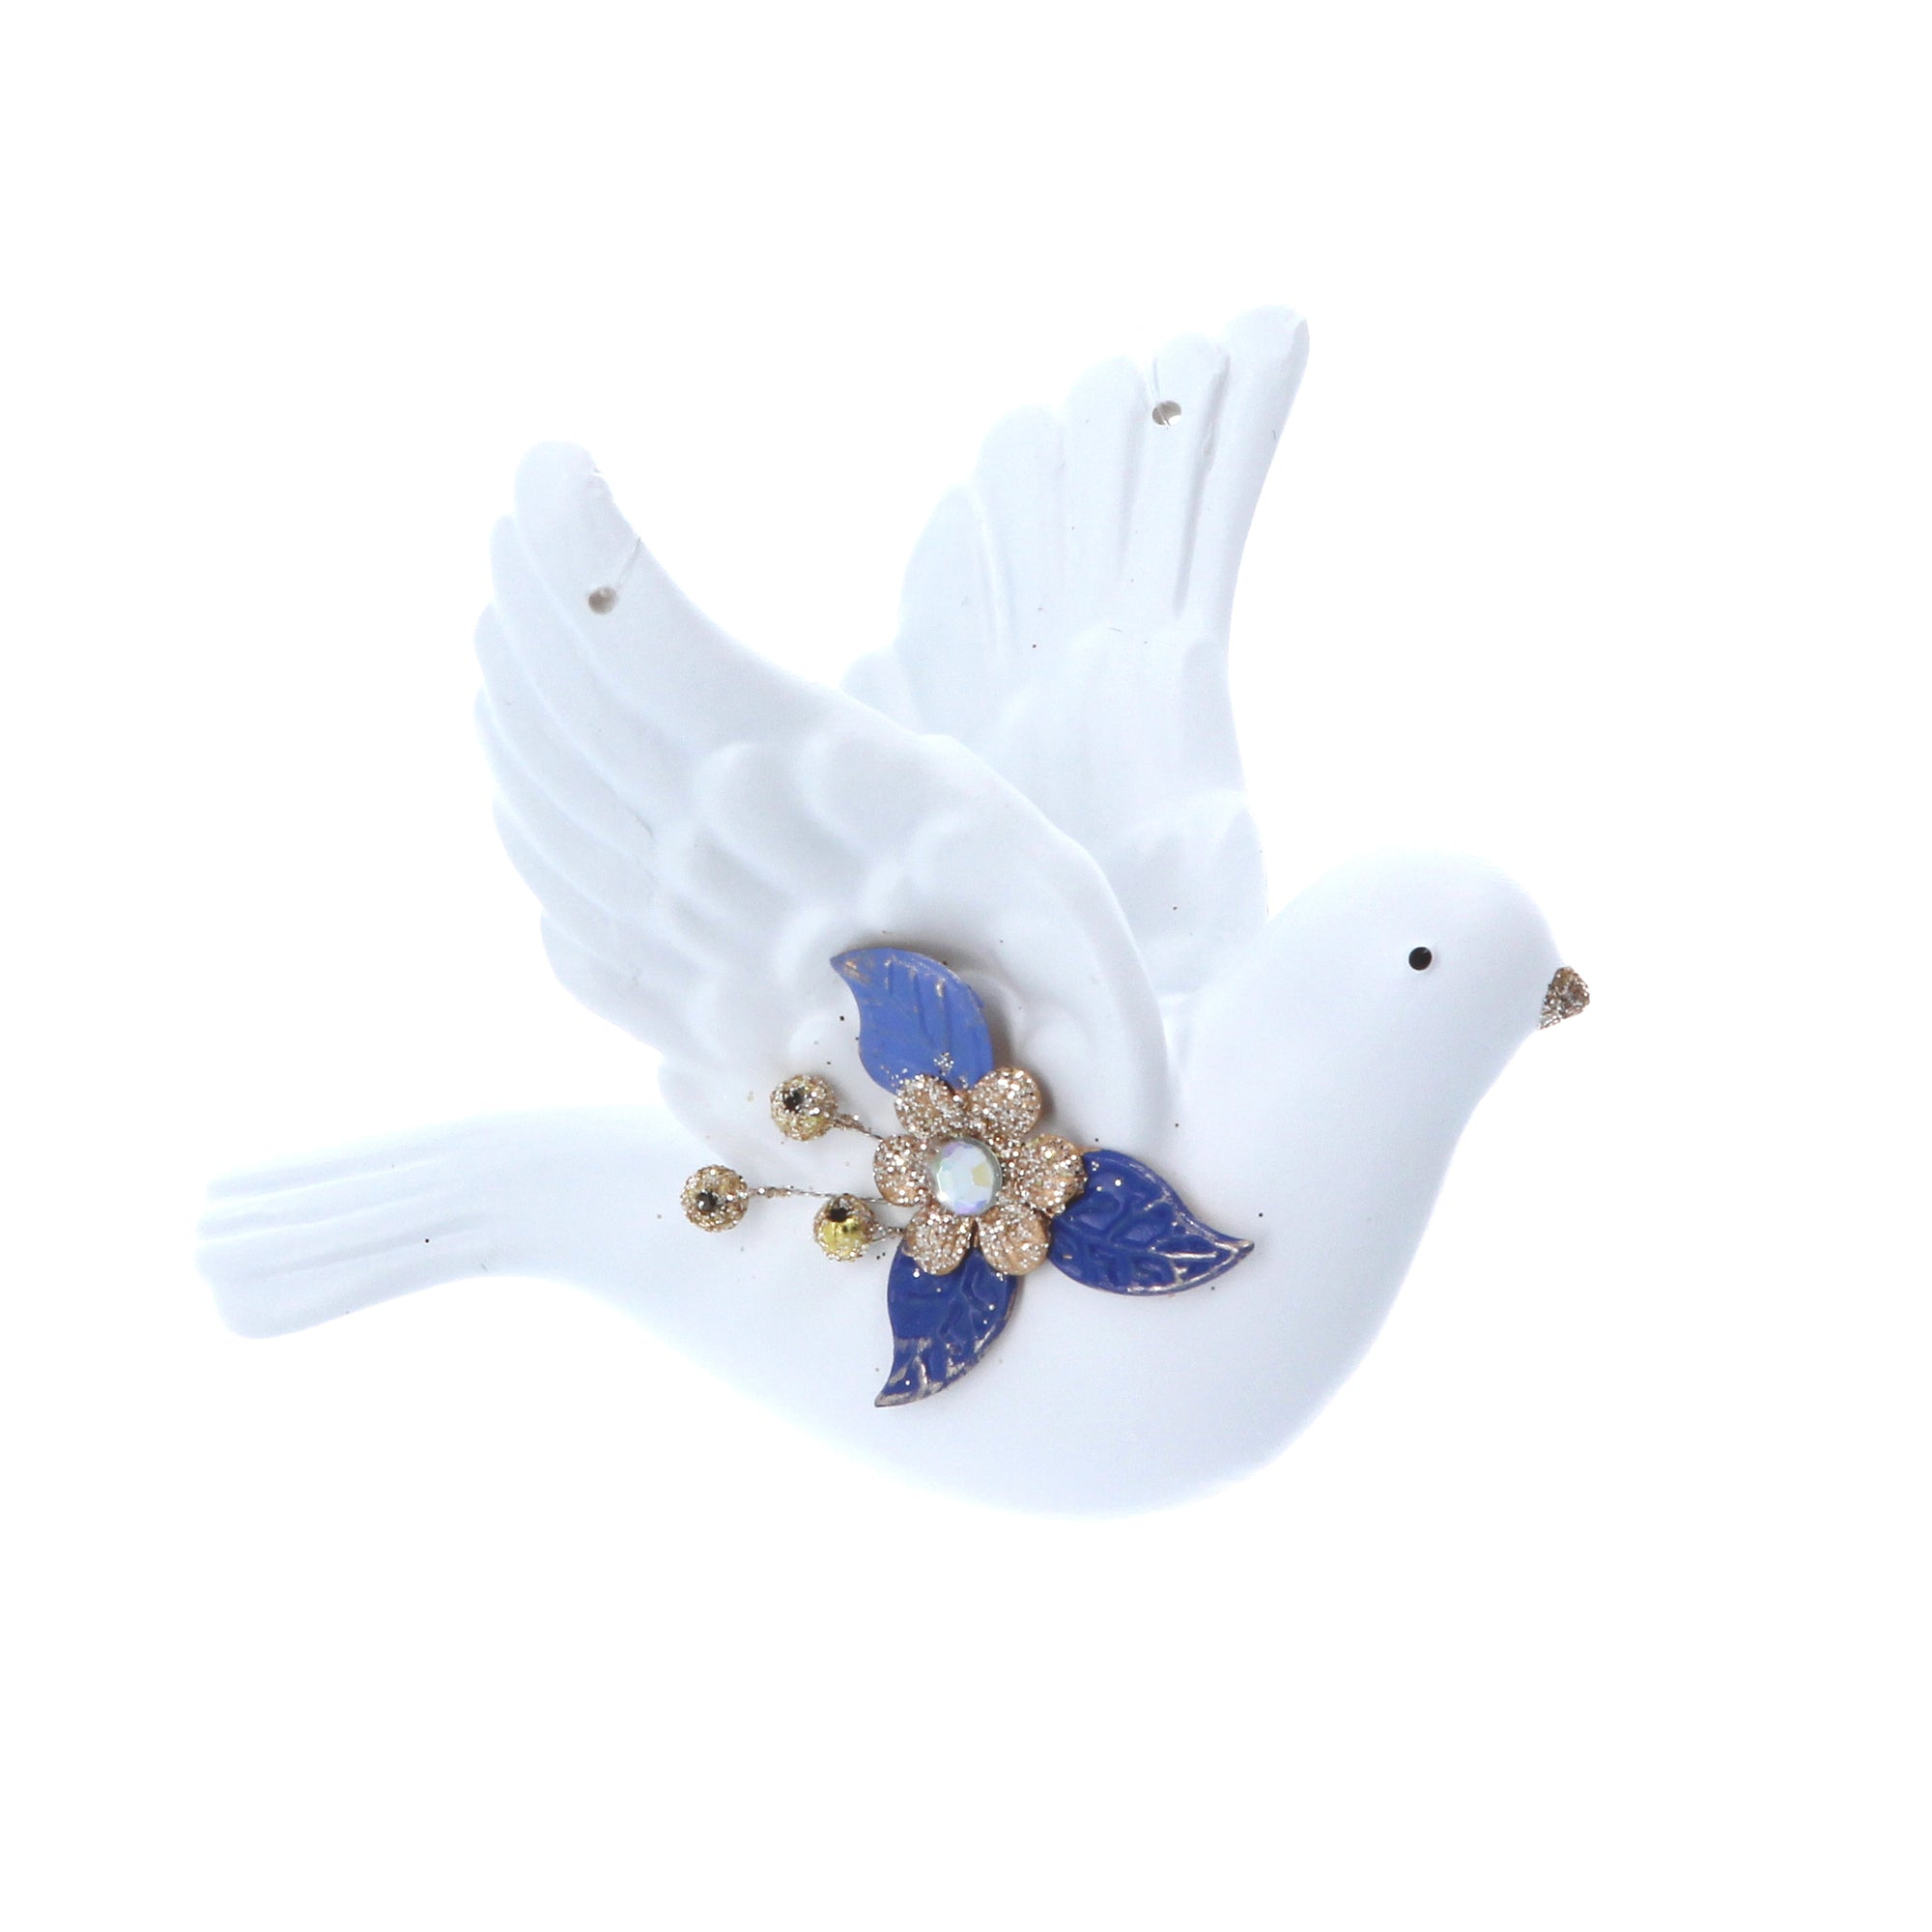 White Dove Ornament with Gold and Blue Decoration | Putti Christmas